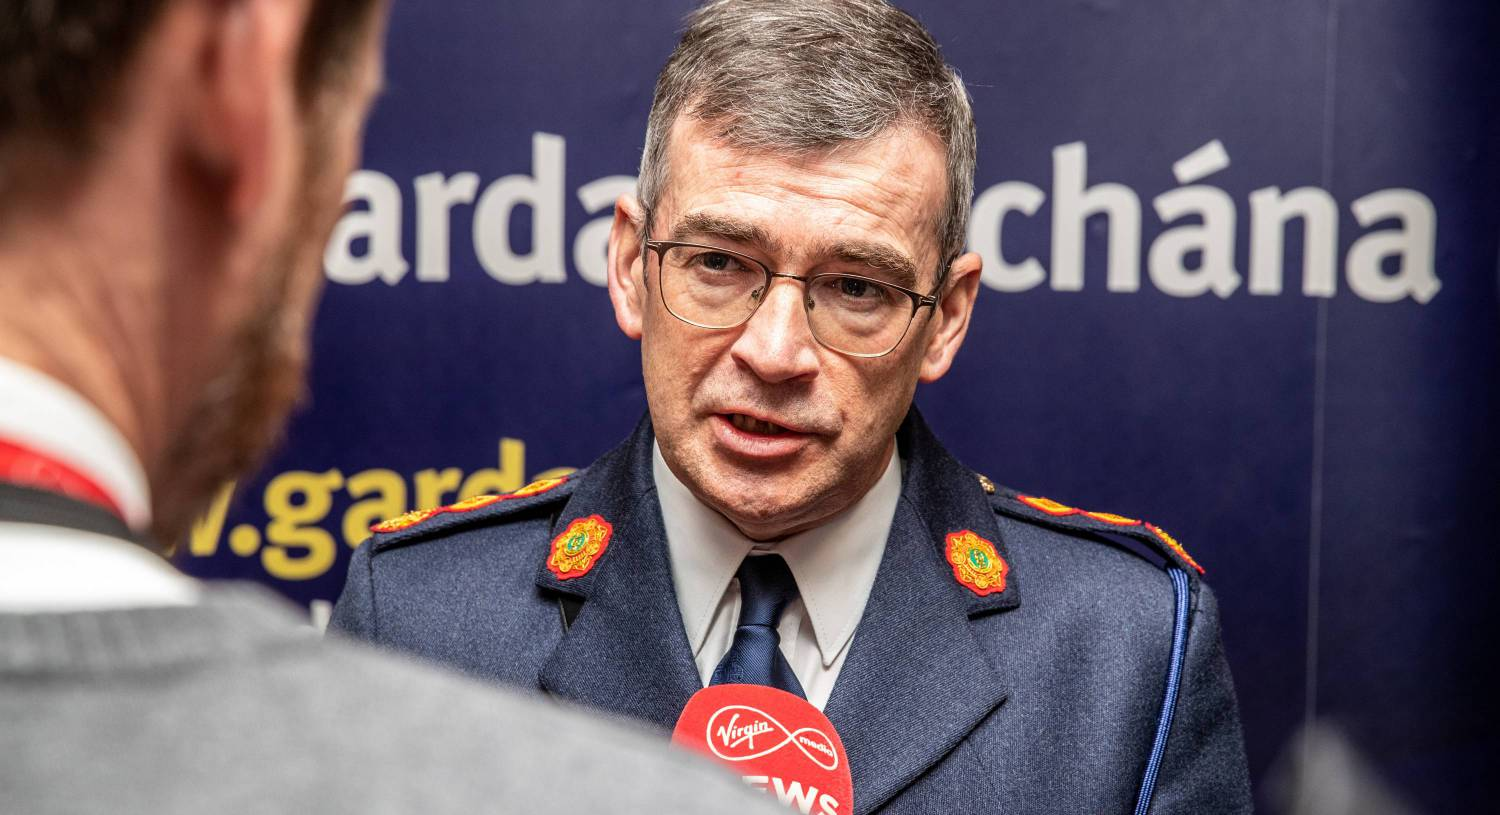 New garda posts set for US and Colombia to fight                 organised crime